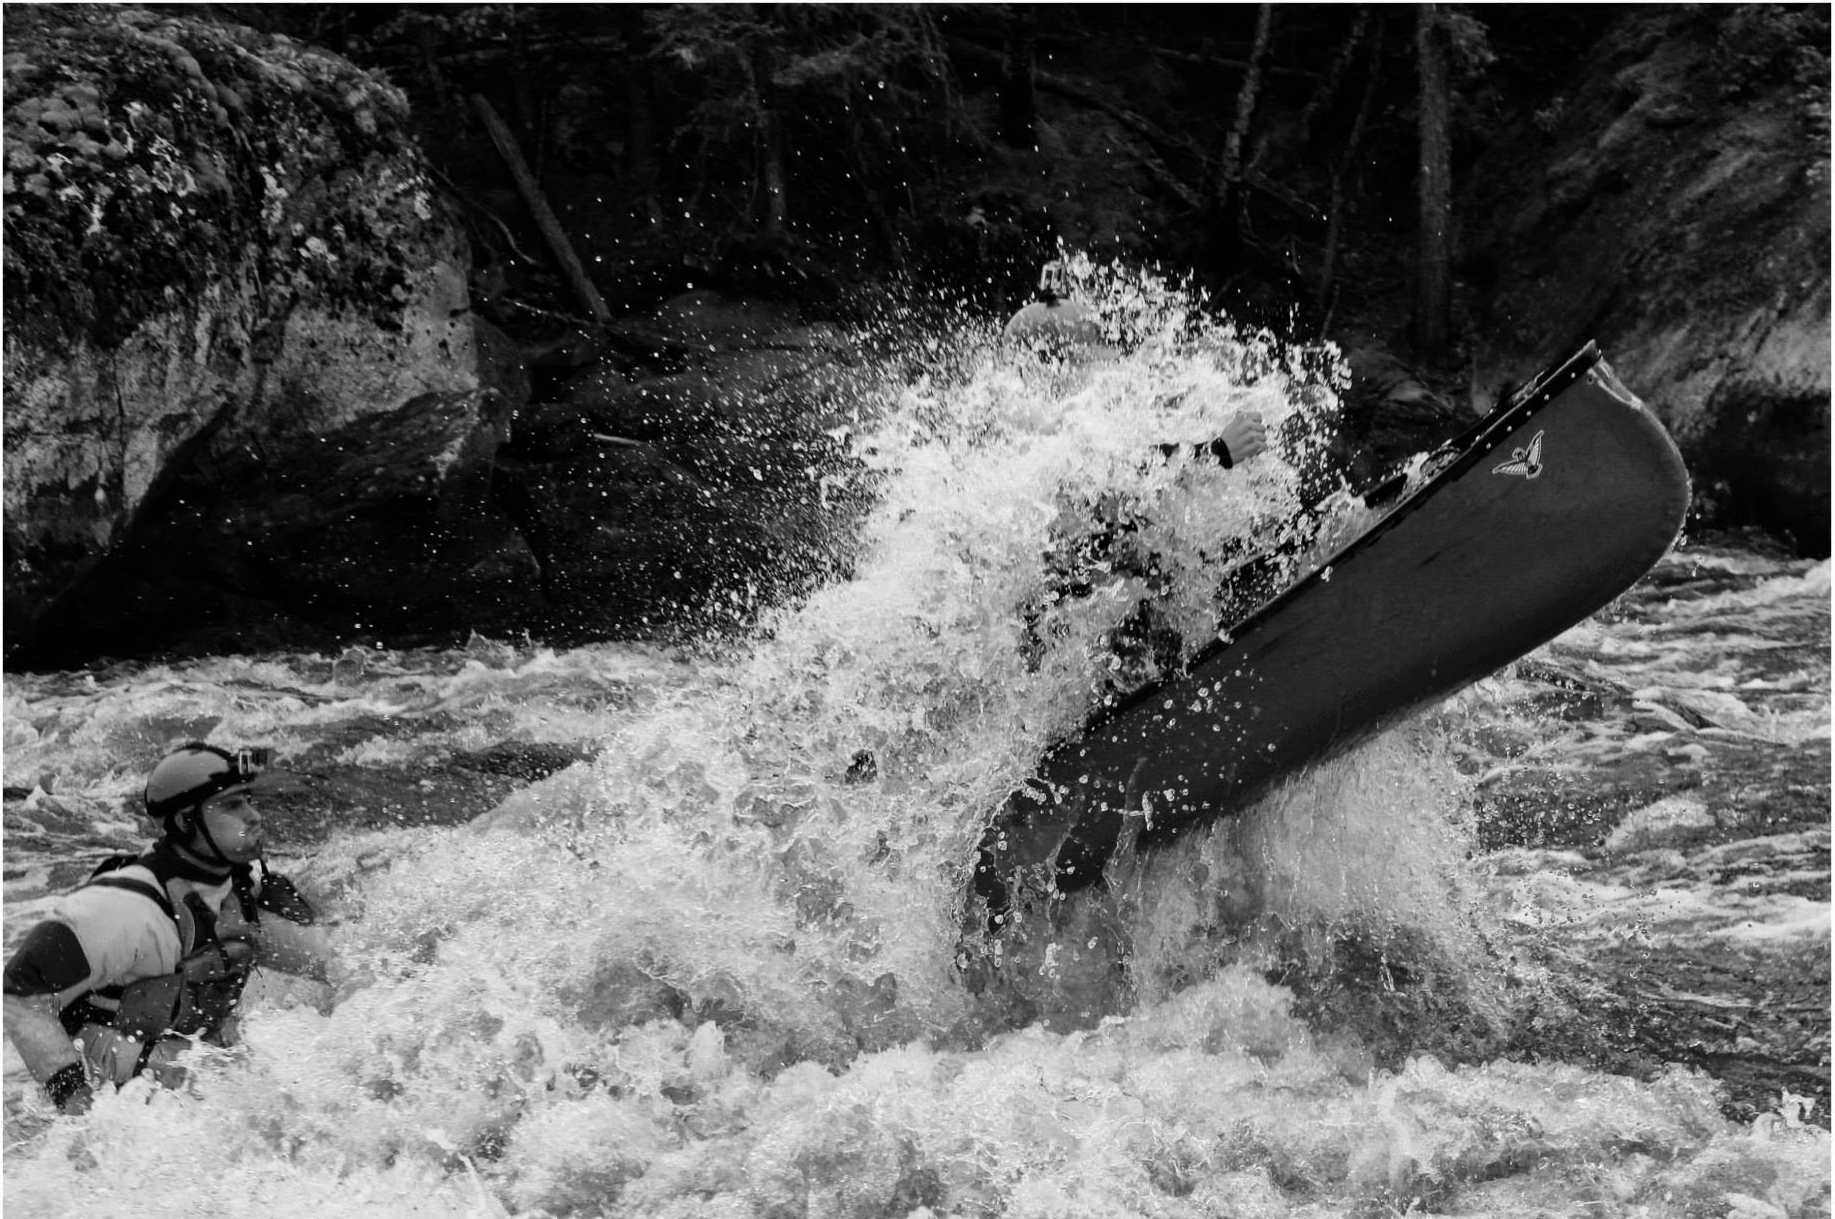 Mitch Taylor powering through some large white water on the Bloodvein River